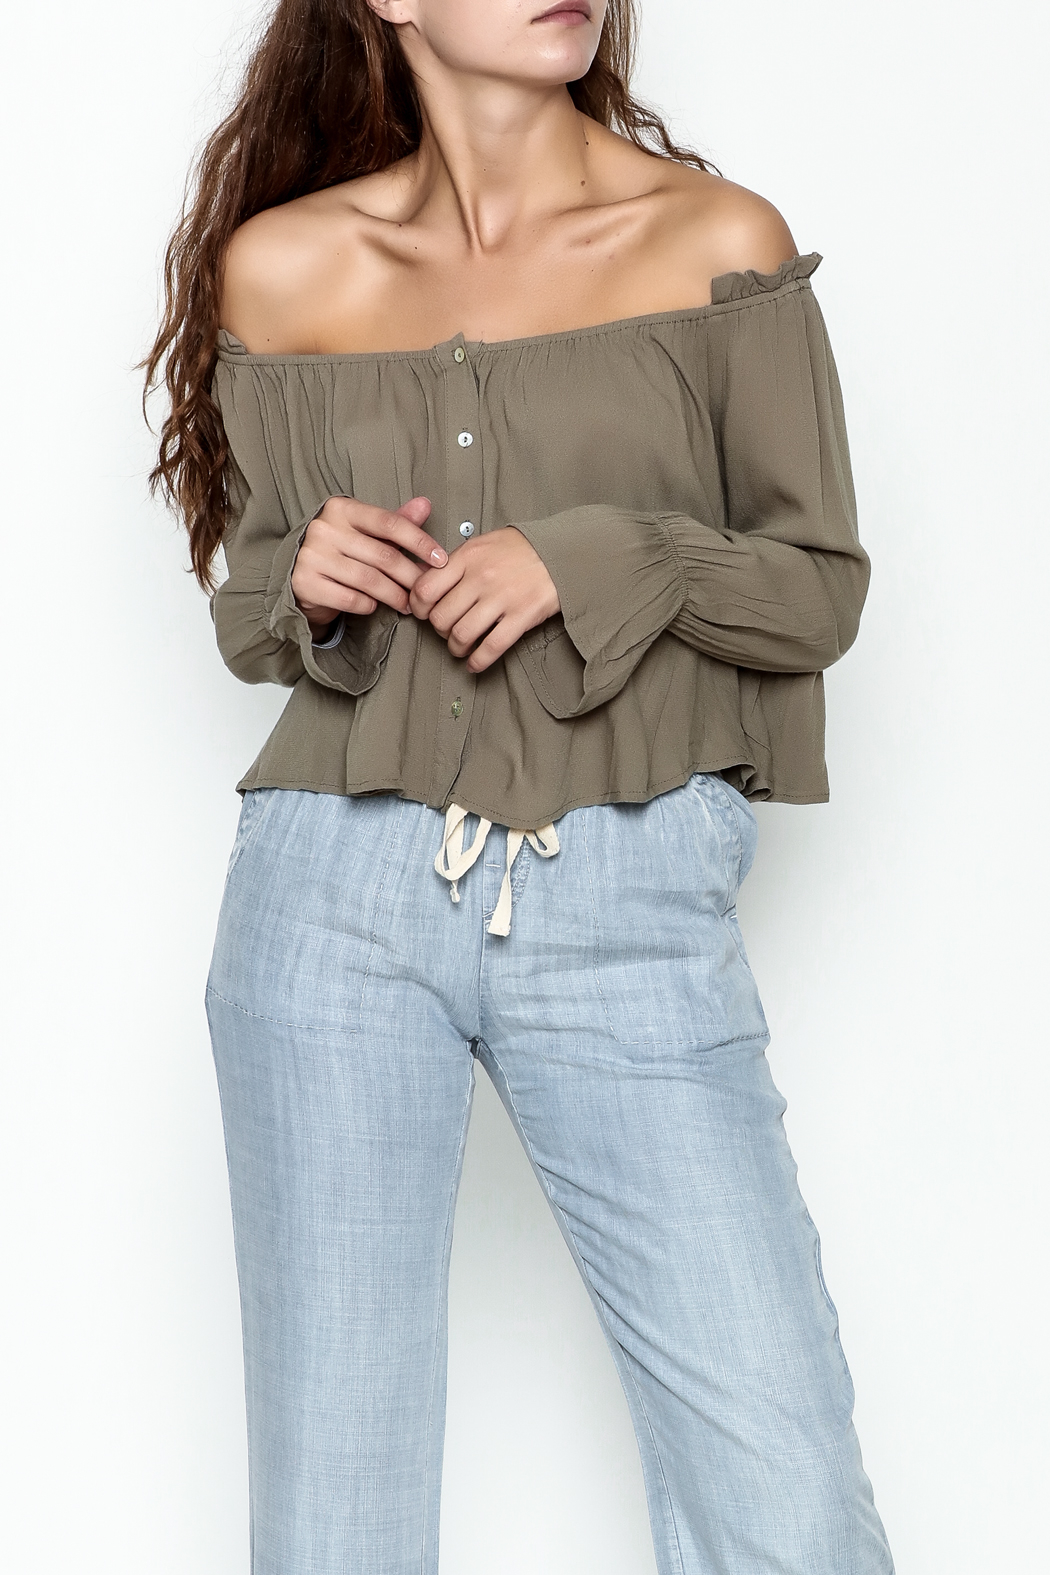 lunik Ruffle Shoulder Top - Front Cropped Image